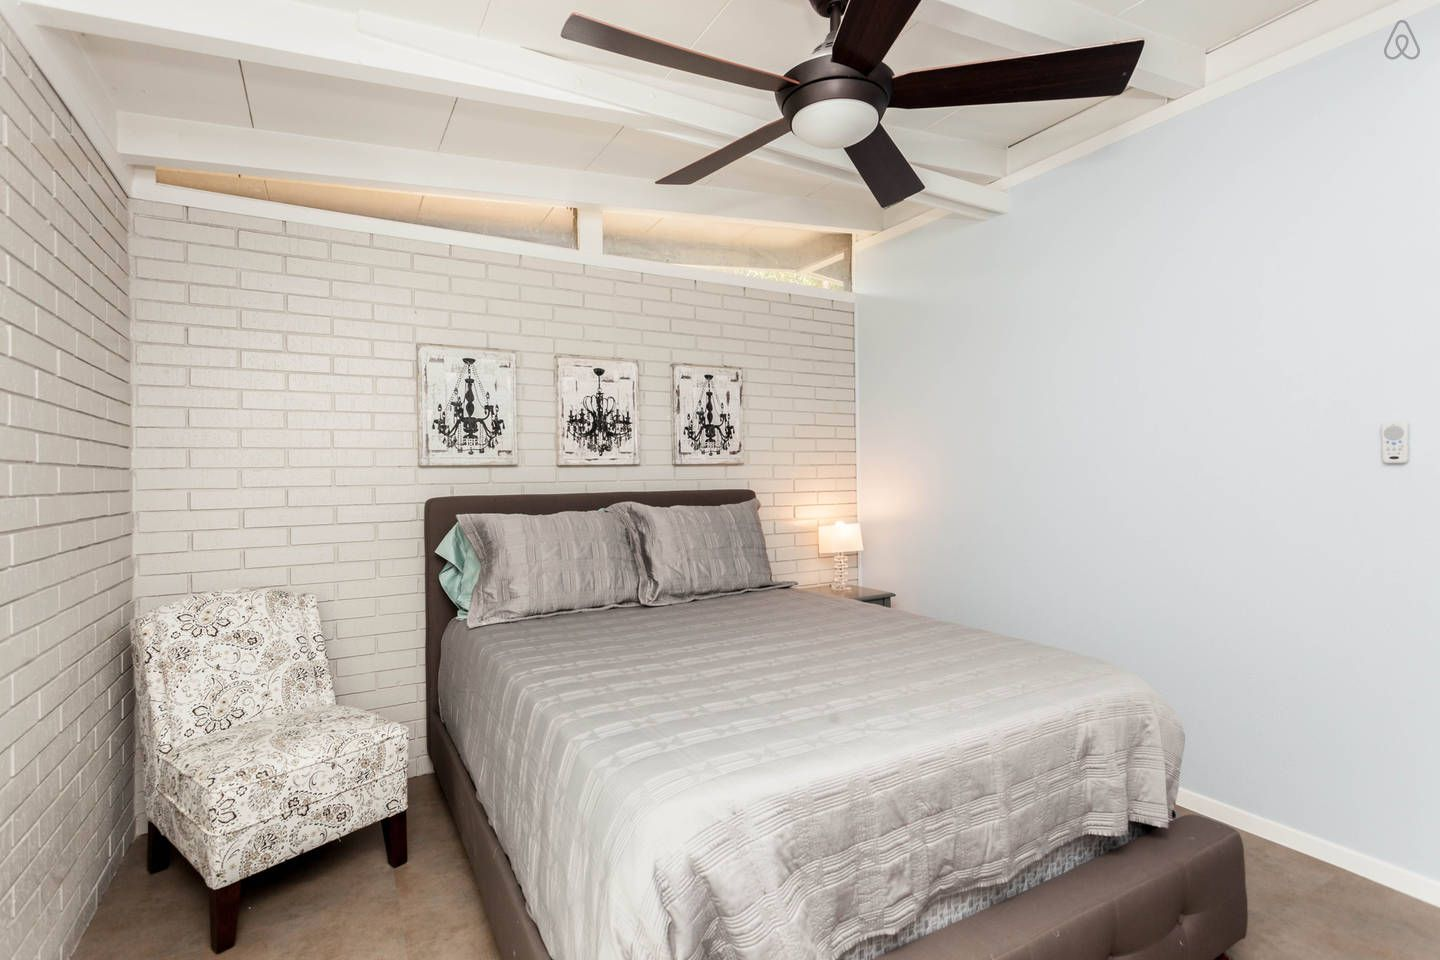 Deluxe Digs vacation rental in Austin, Texas. View more